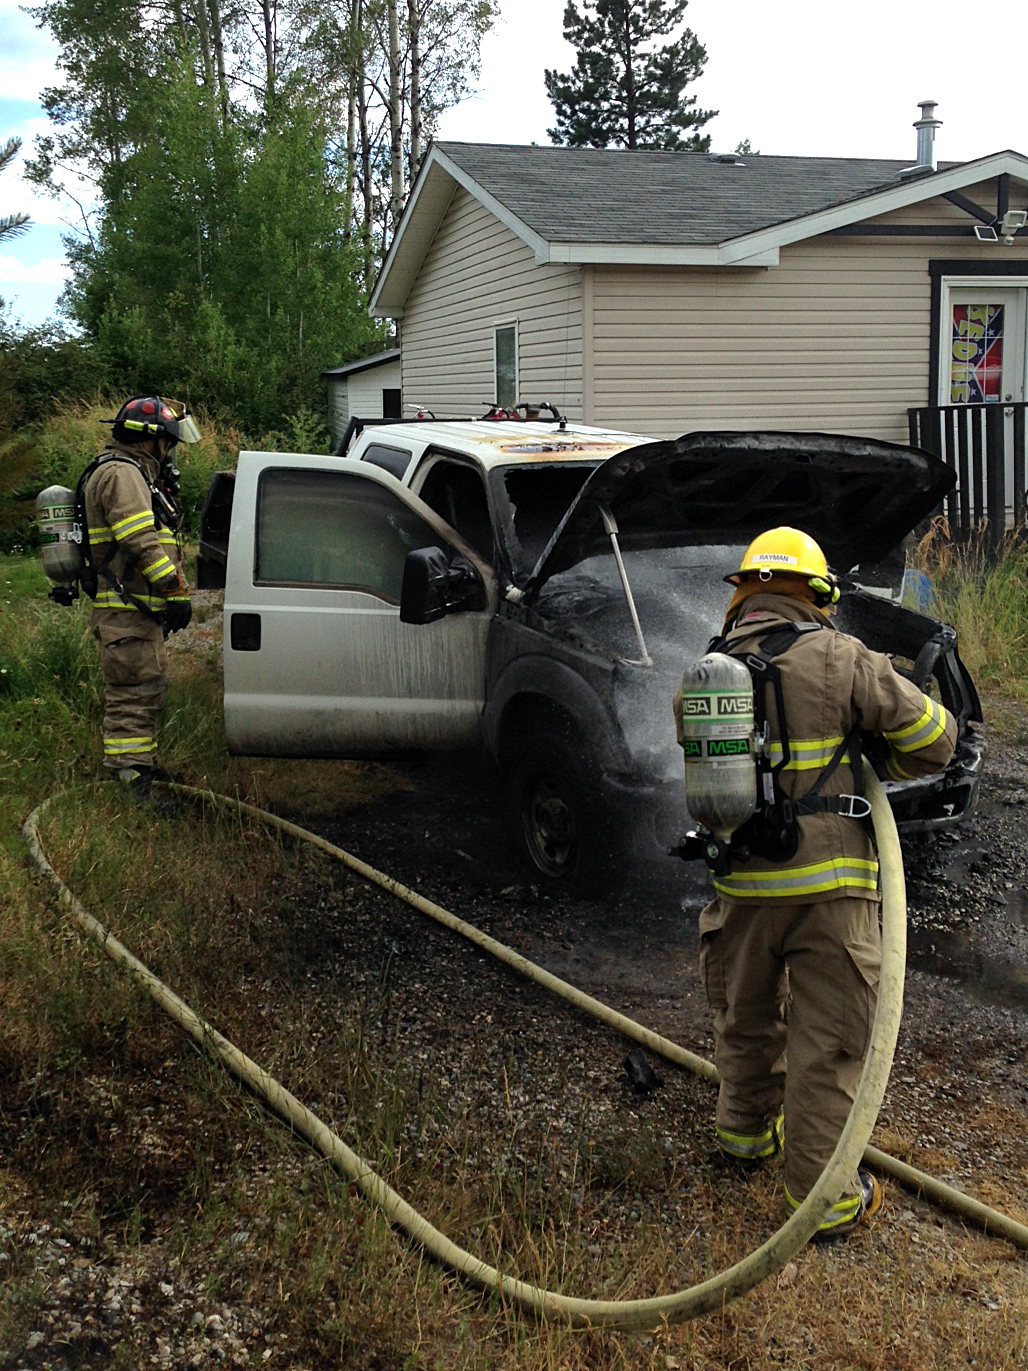 Neighbours help extinguish vehicle fire near Jaffray